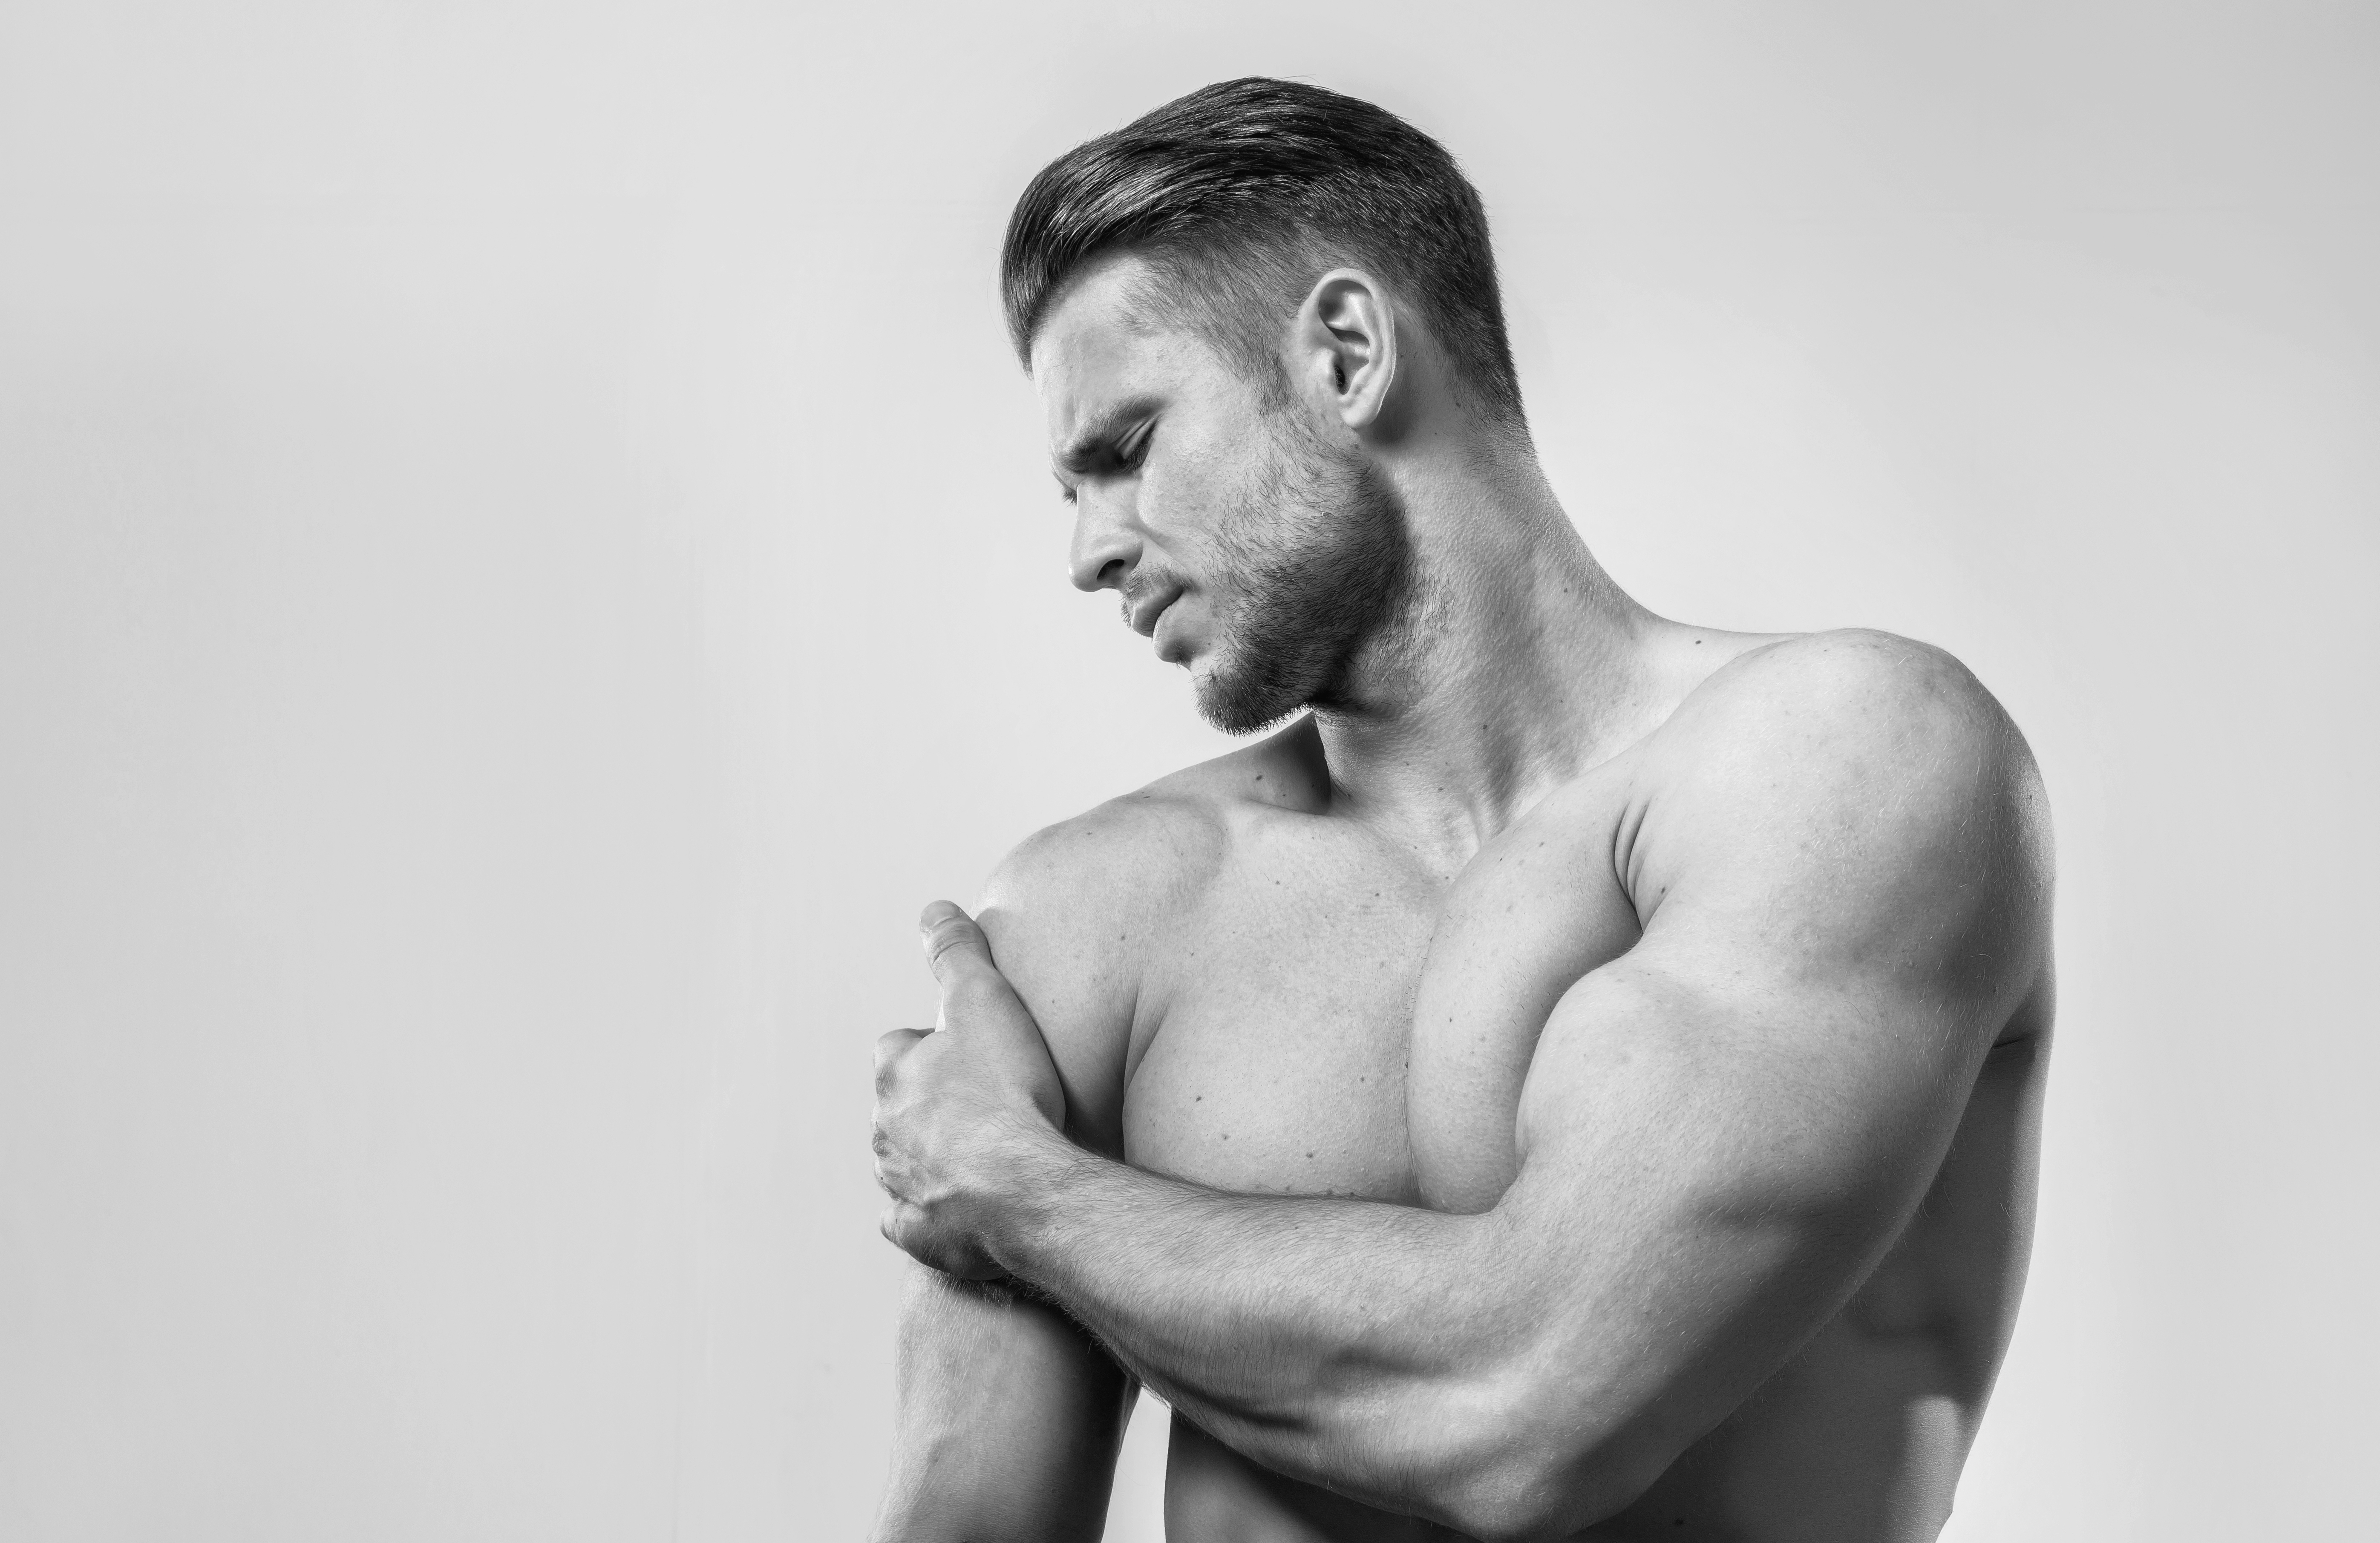 Can Torn Rotator Cuff Be Remedied With Exercise Therapy Alone?